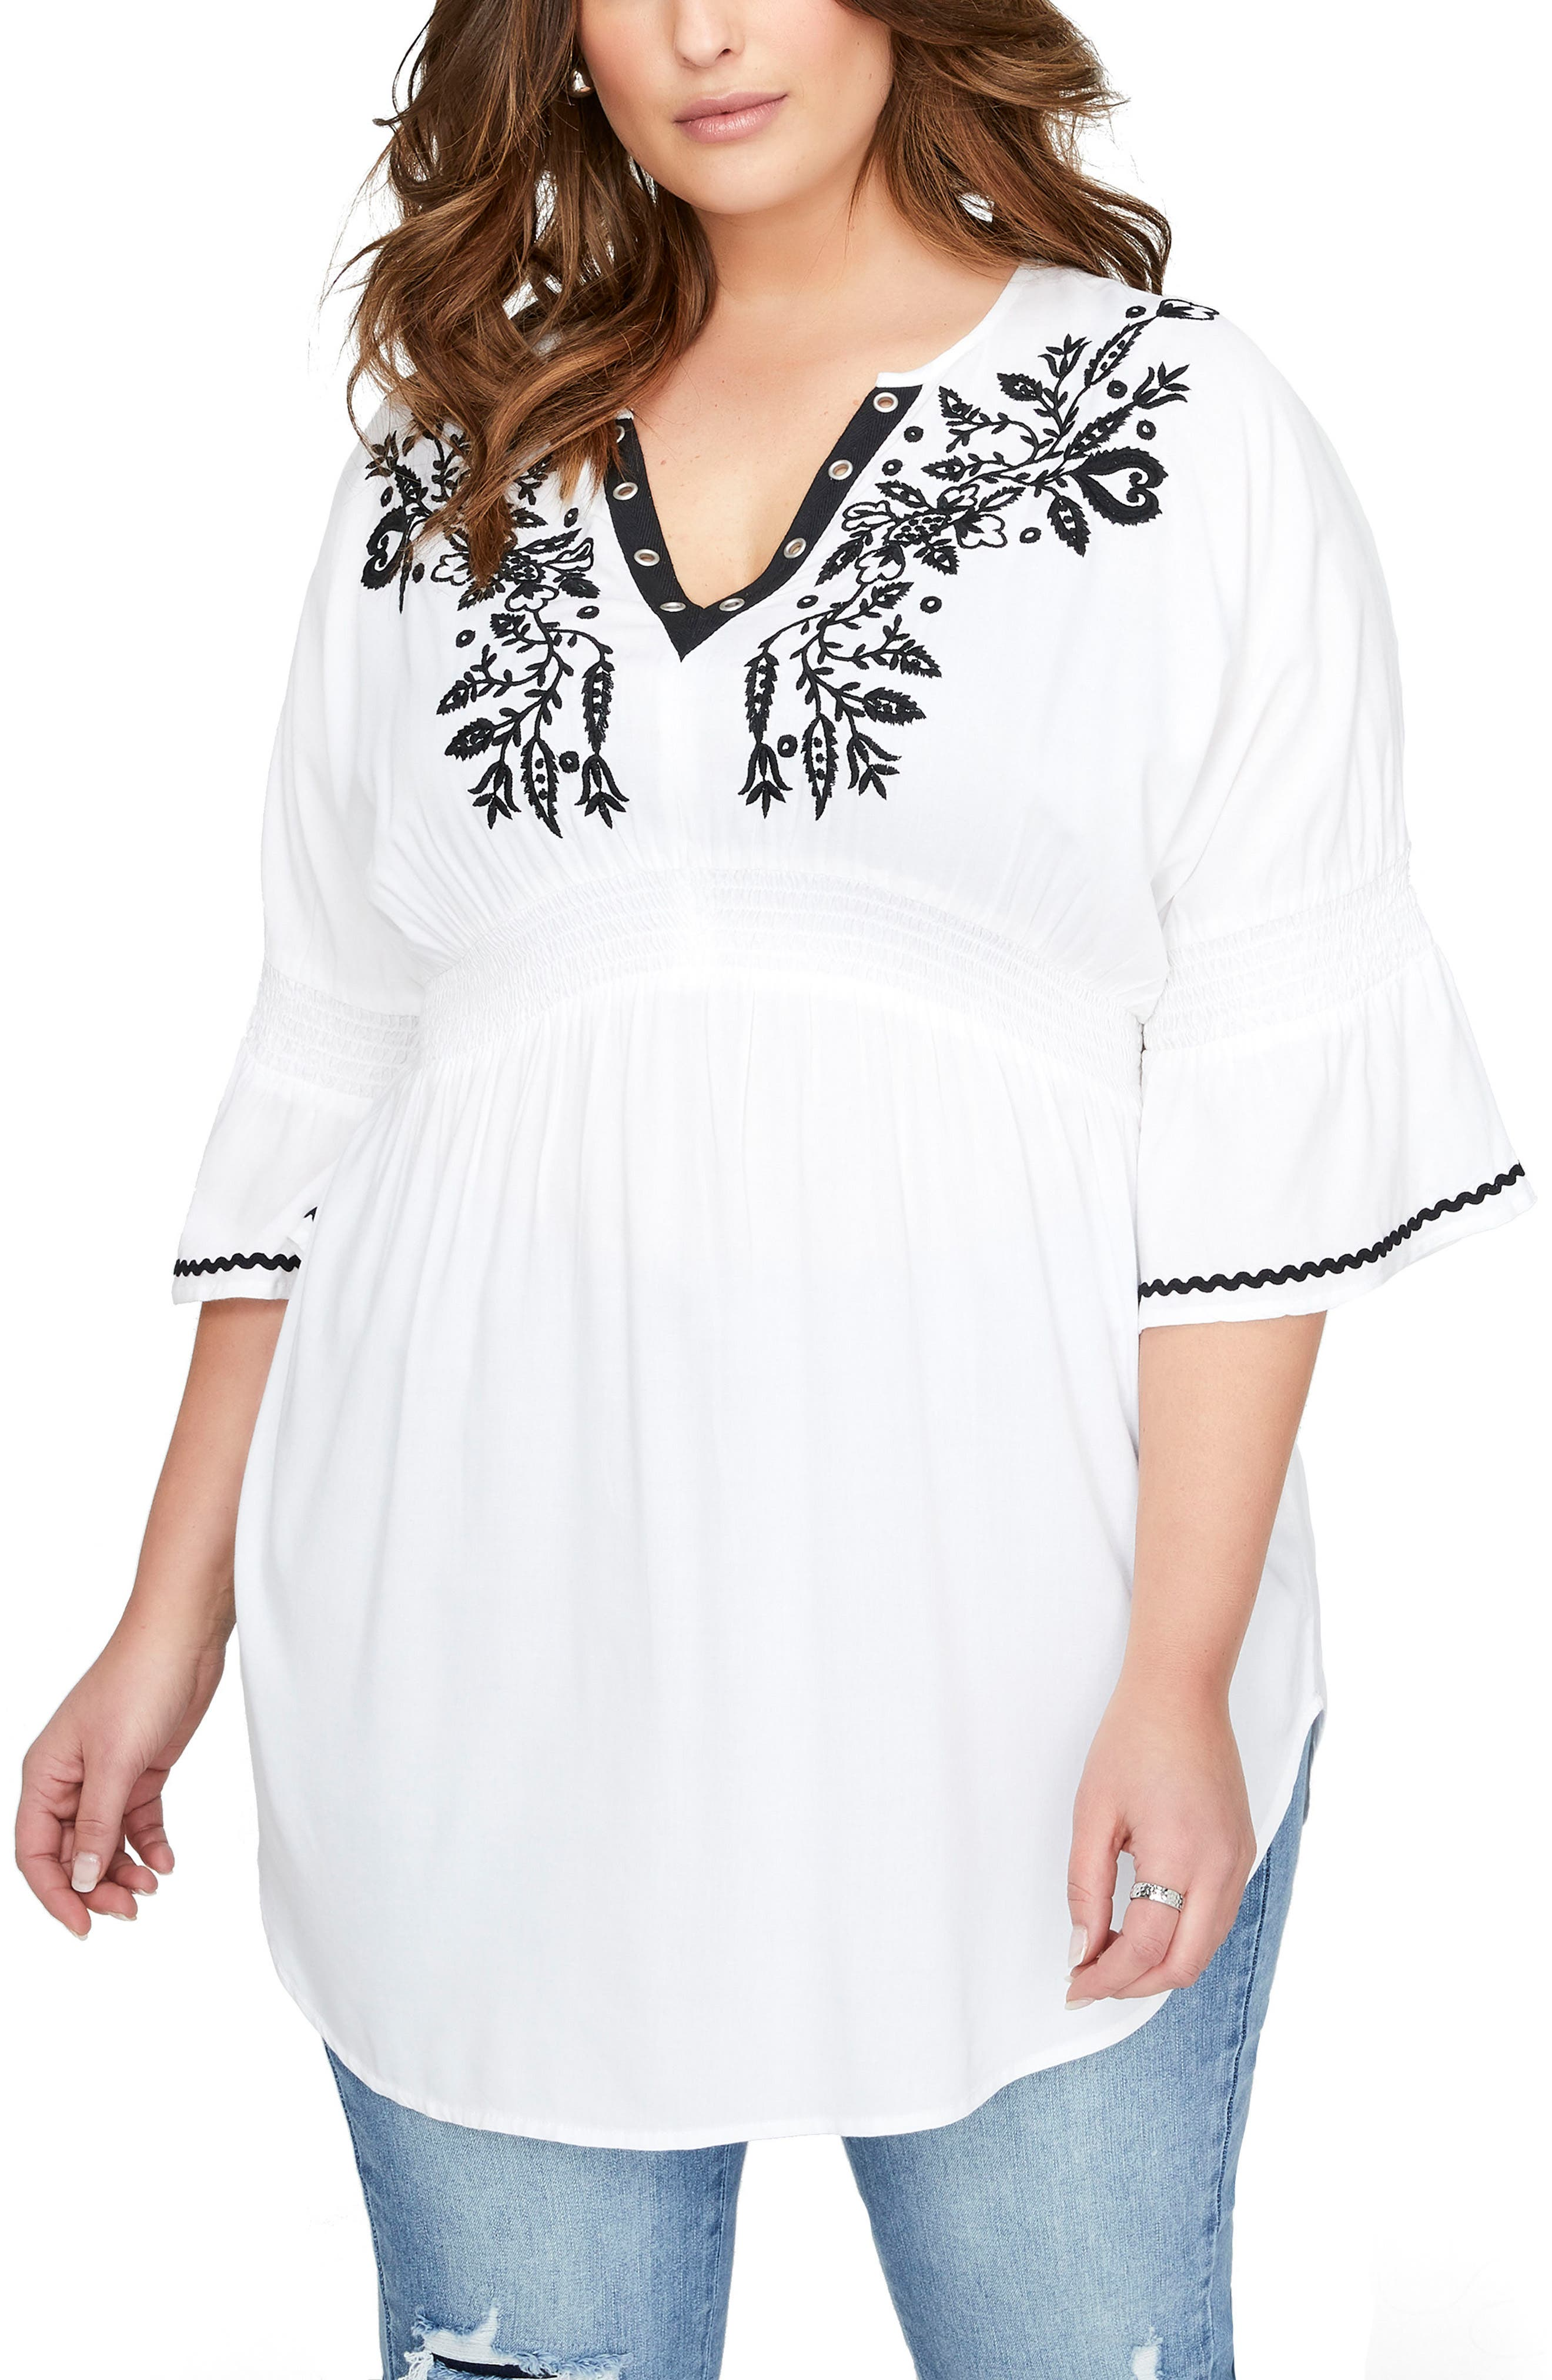 ADDITION ELLE LOVE AND LEGEND Embroidered Bell Sleeve Top, Main, color, 100